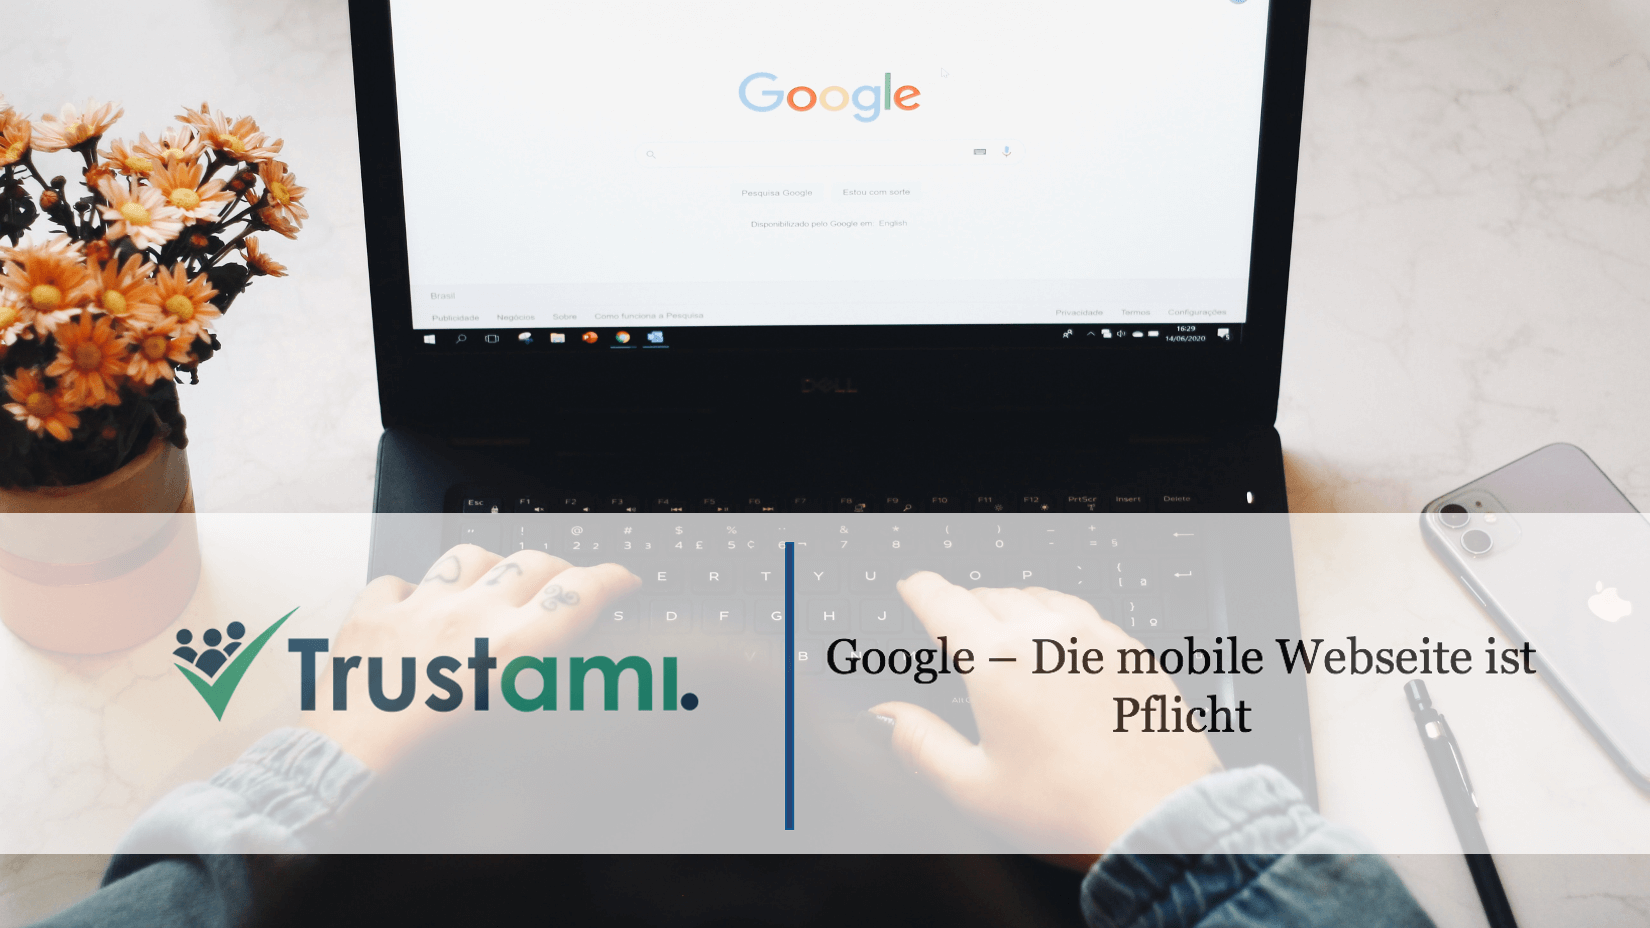 Google Mobile Webseite